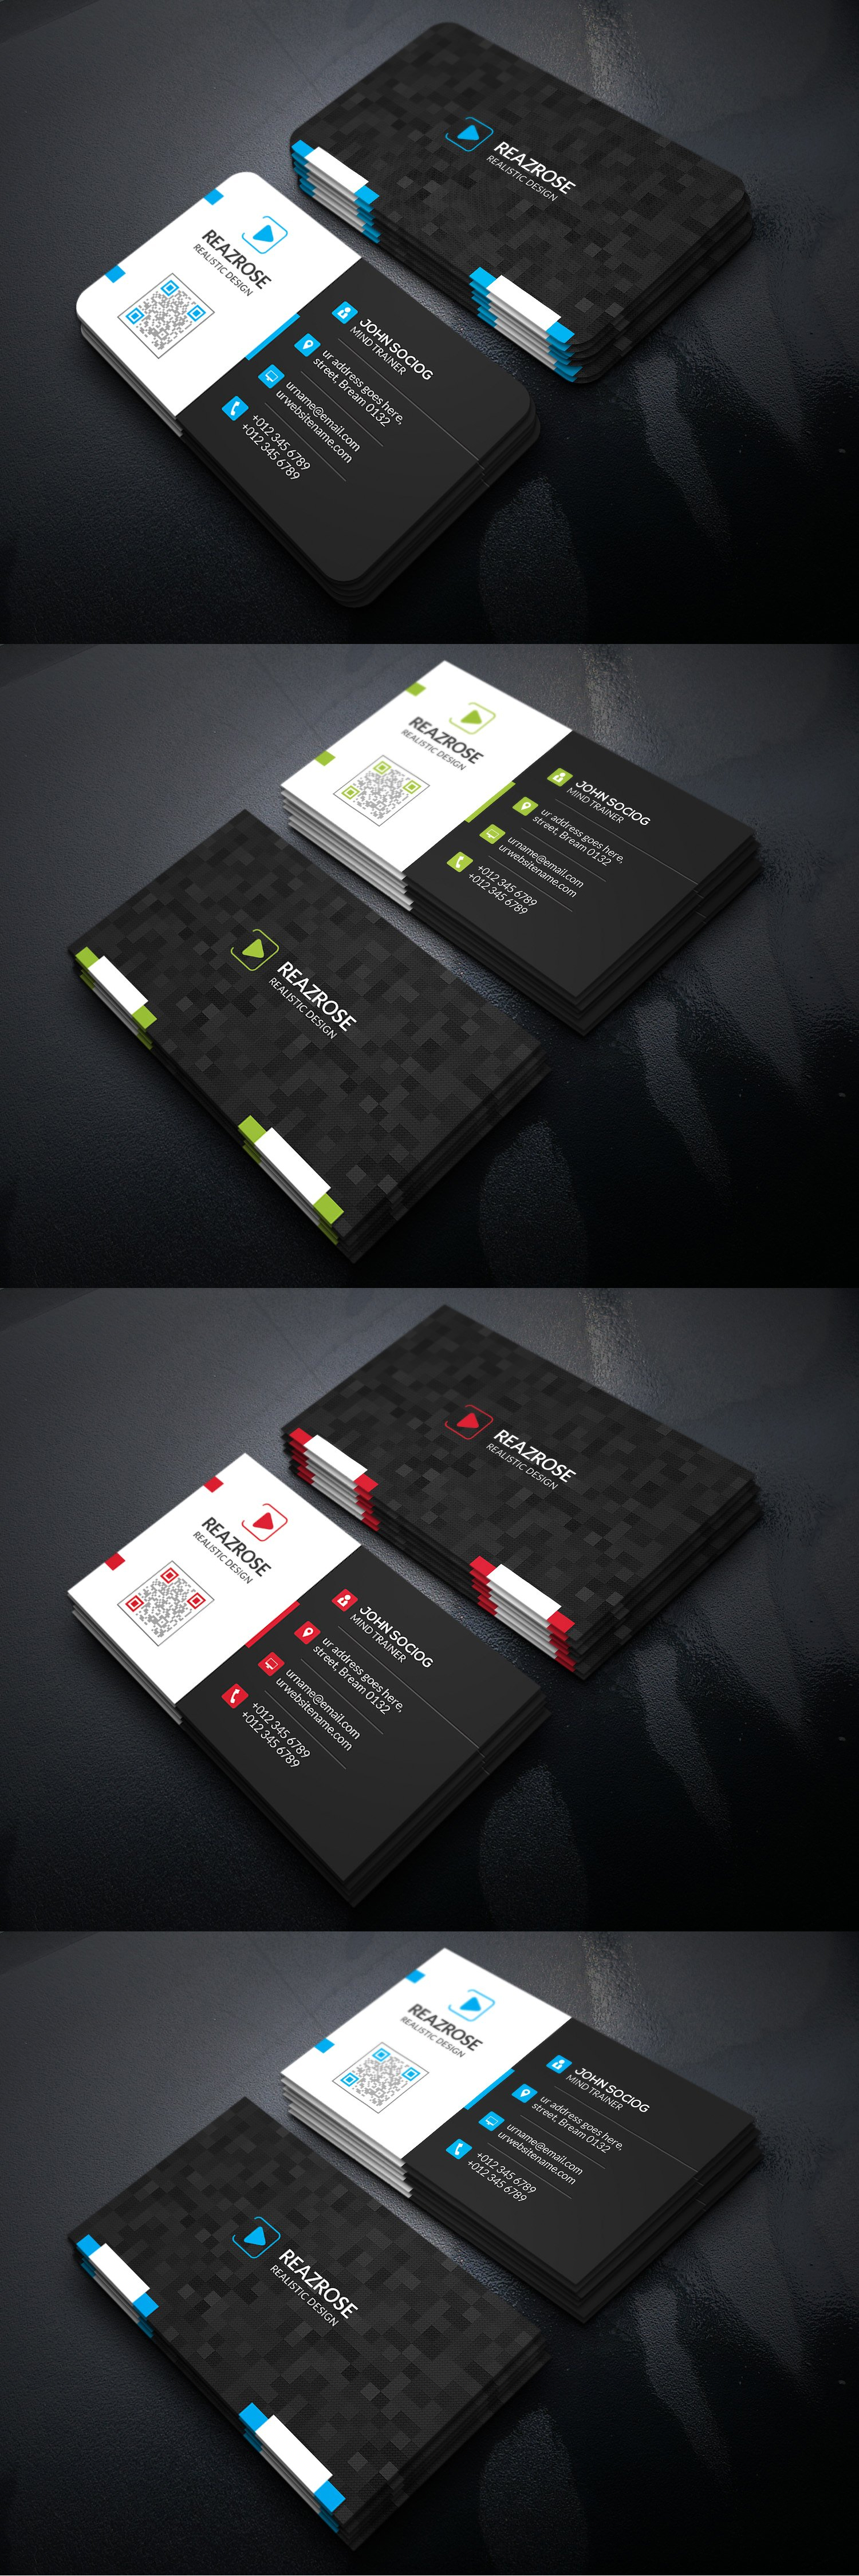 Business card templates psd business card templates pinterest business card templates psd reheart Image collections